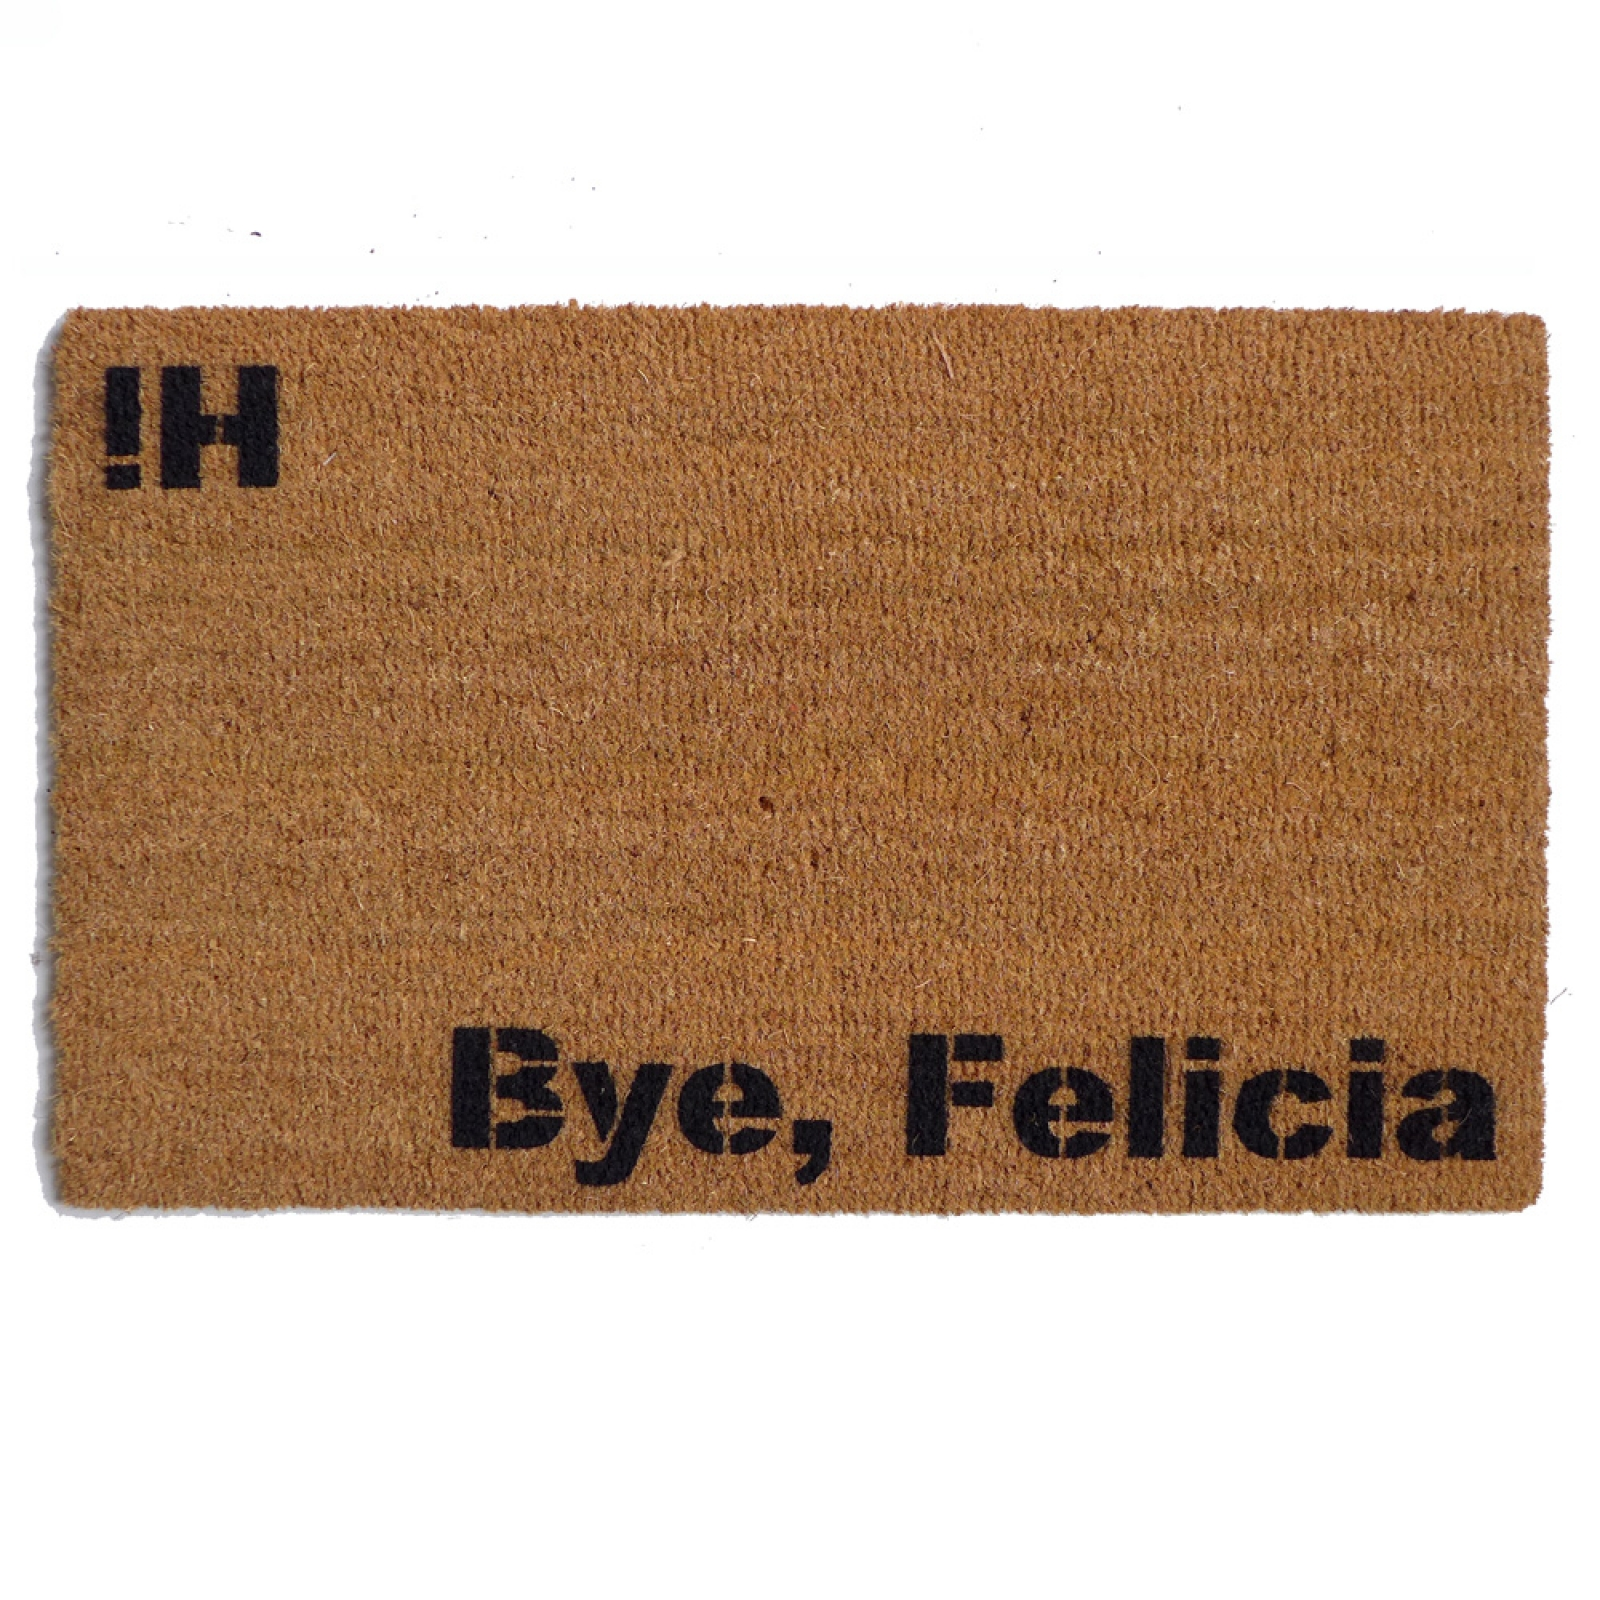 Bye Felicia Friday Doormat Damn Good Doormats